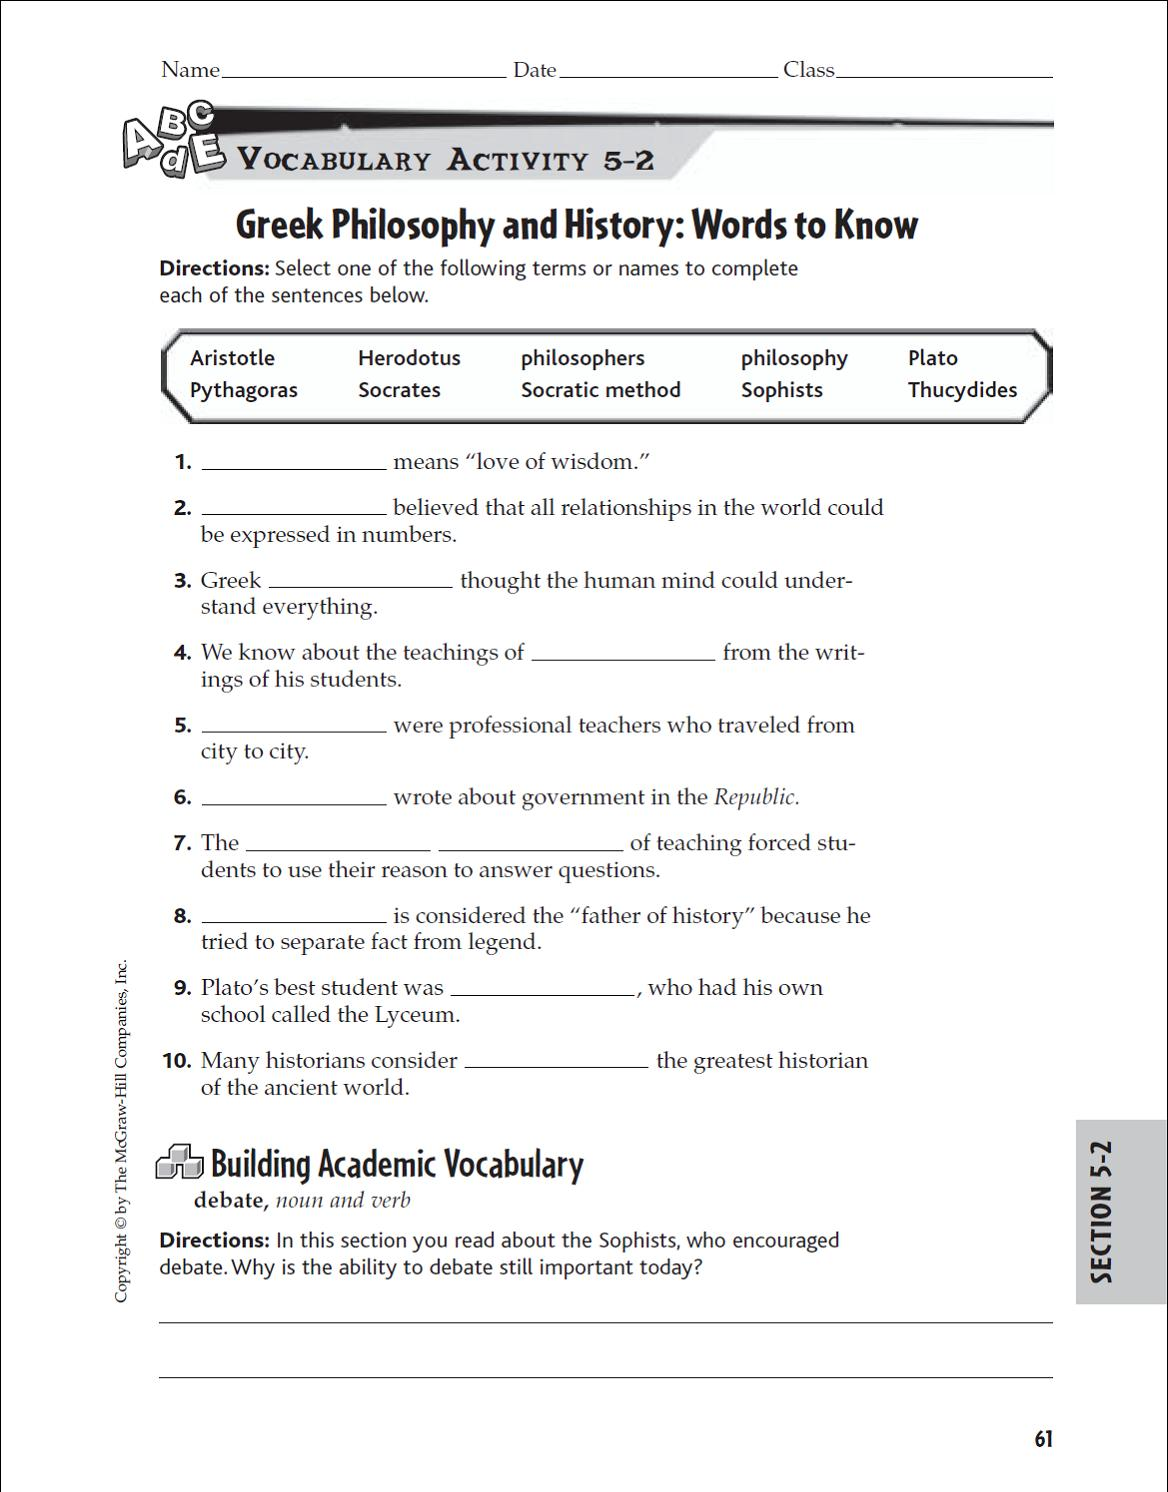 Guided Reading Activity 4 3 Classical Greece Answers